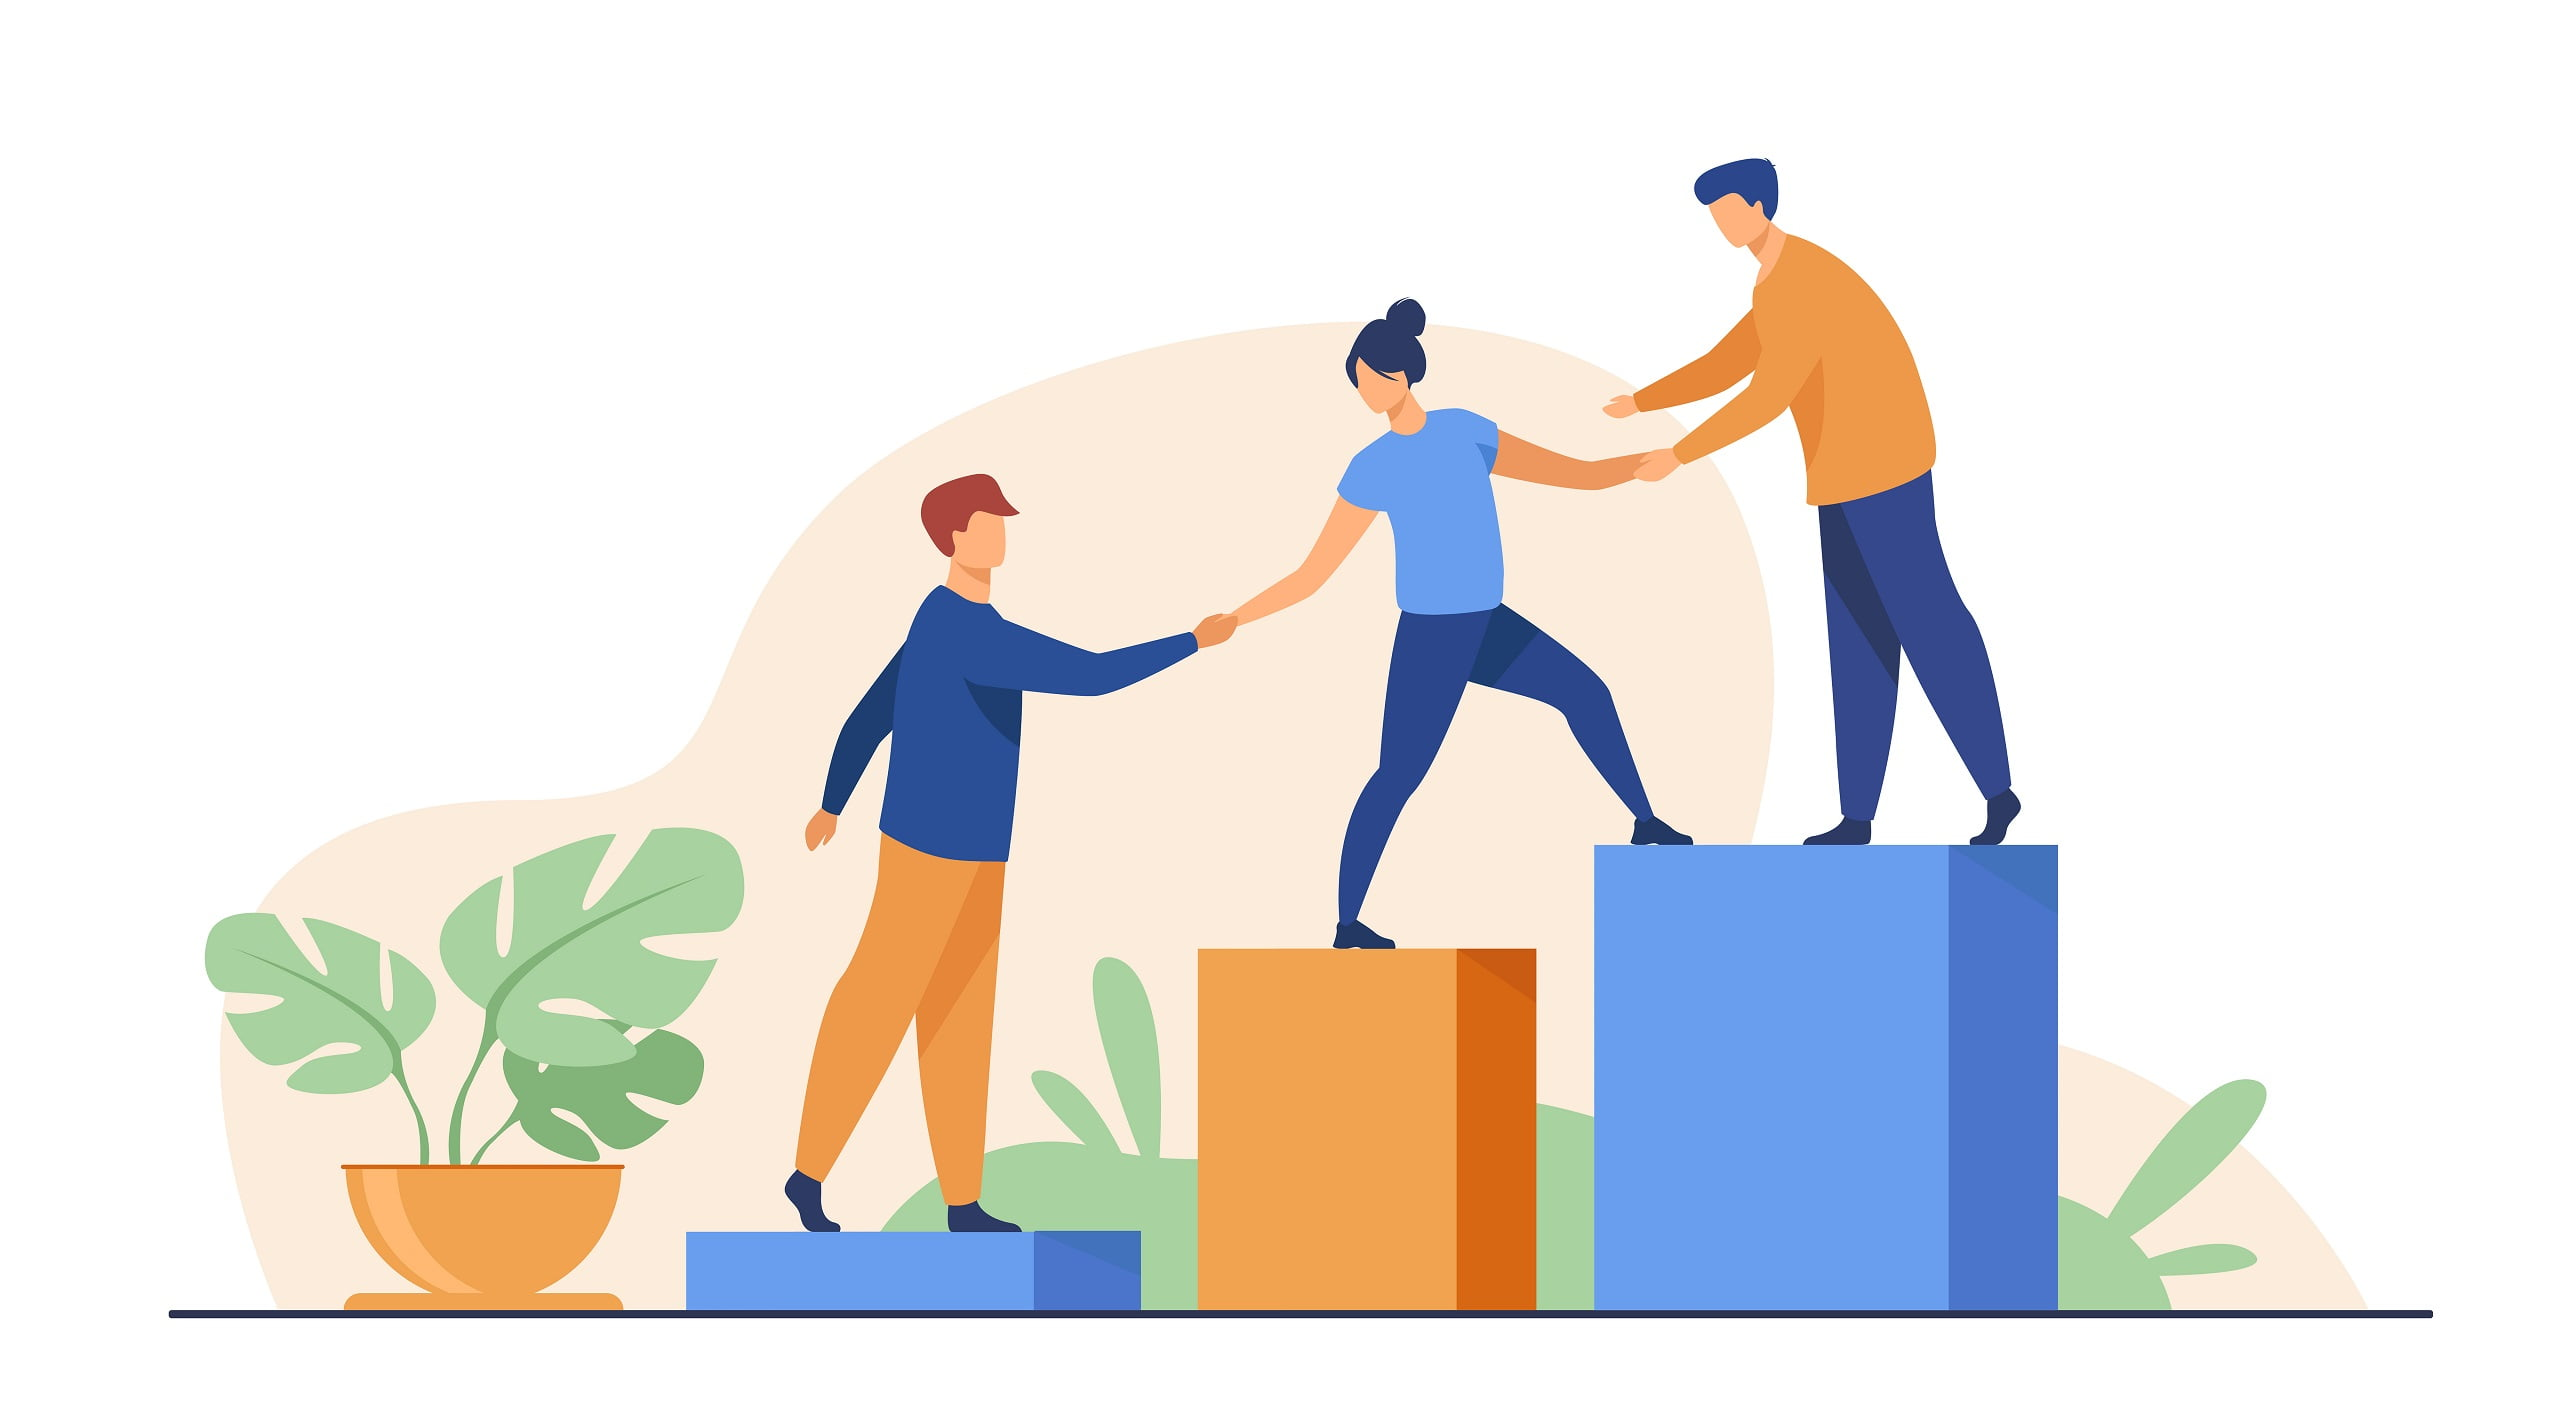 Employees giving hands and helping colleagues towalk upstairs. Team giving support, growing together. Vector illustration for teamwork, mentorship, cooperation concept